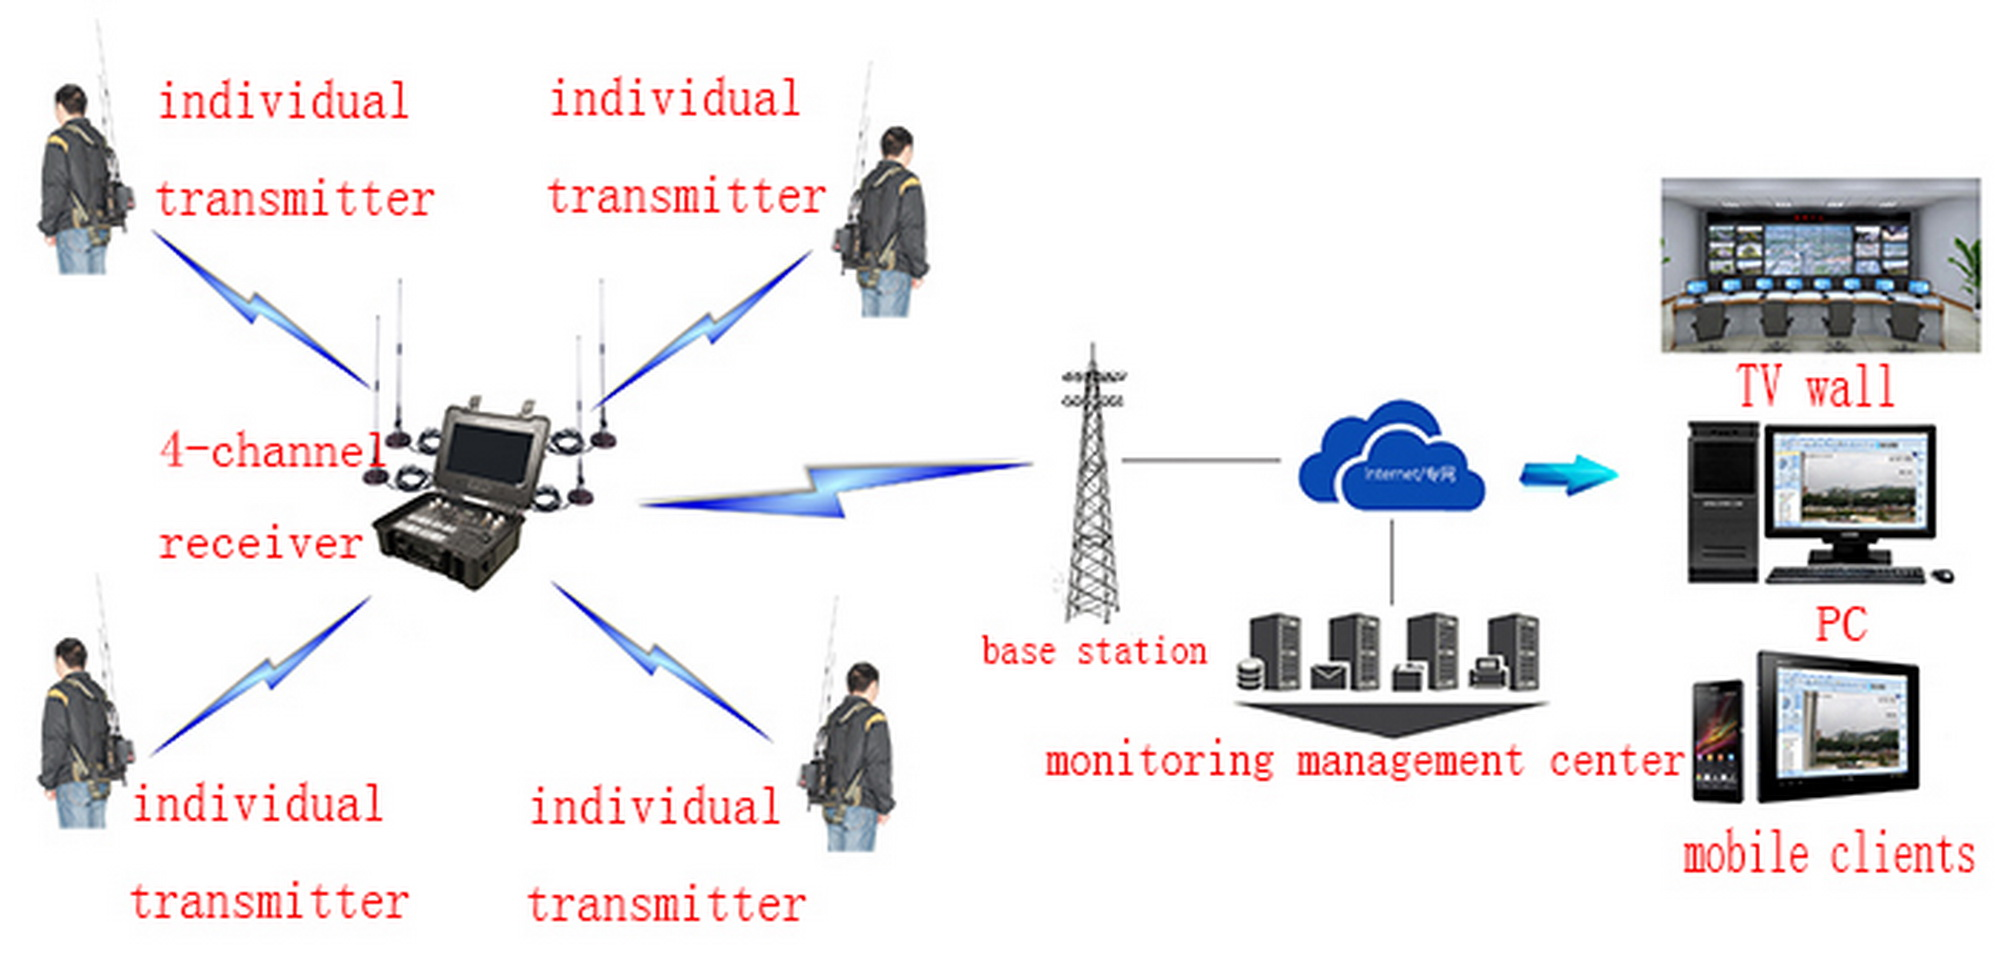 wireless image transmission solution,remote high-speed NLOS two-way data transmitter